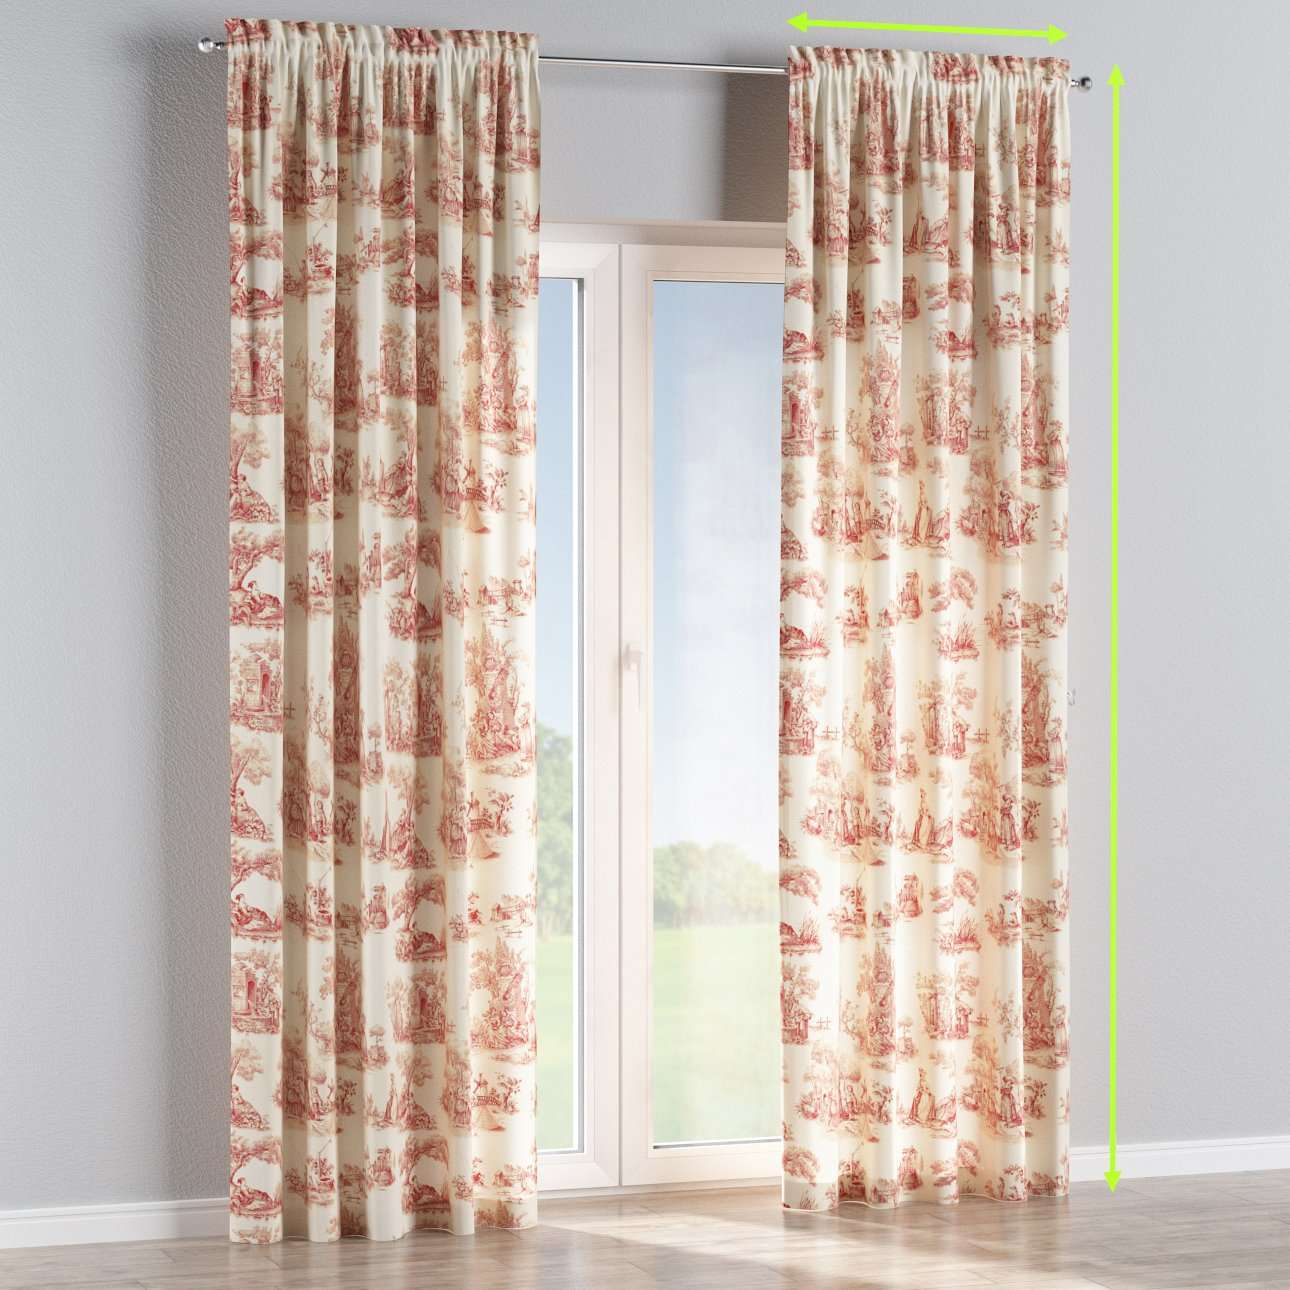 Slot and frill curtains in collection Avinon, fabric: 132-15